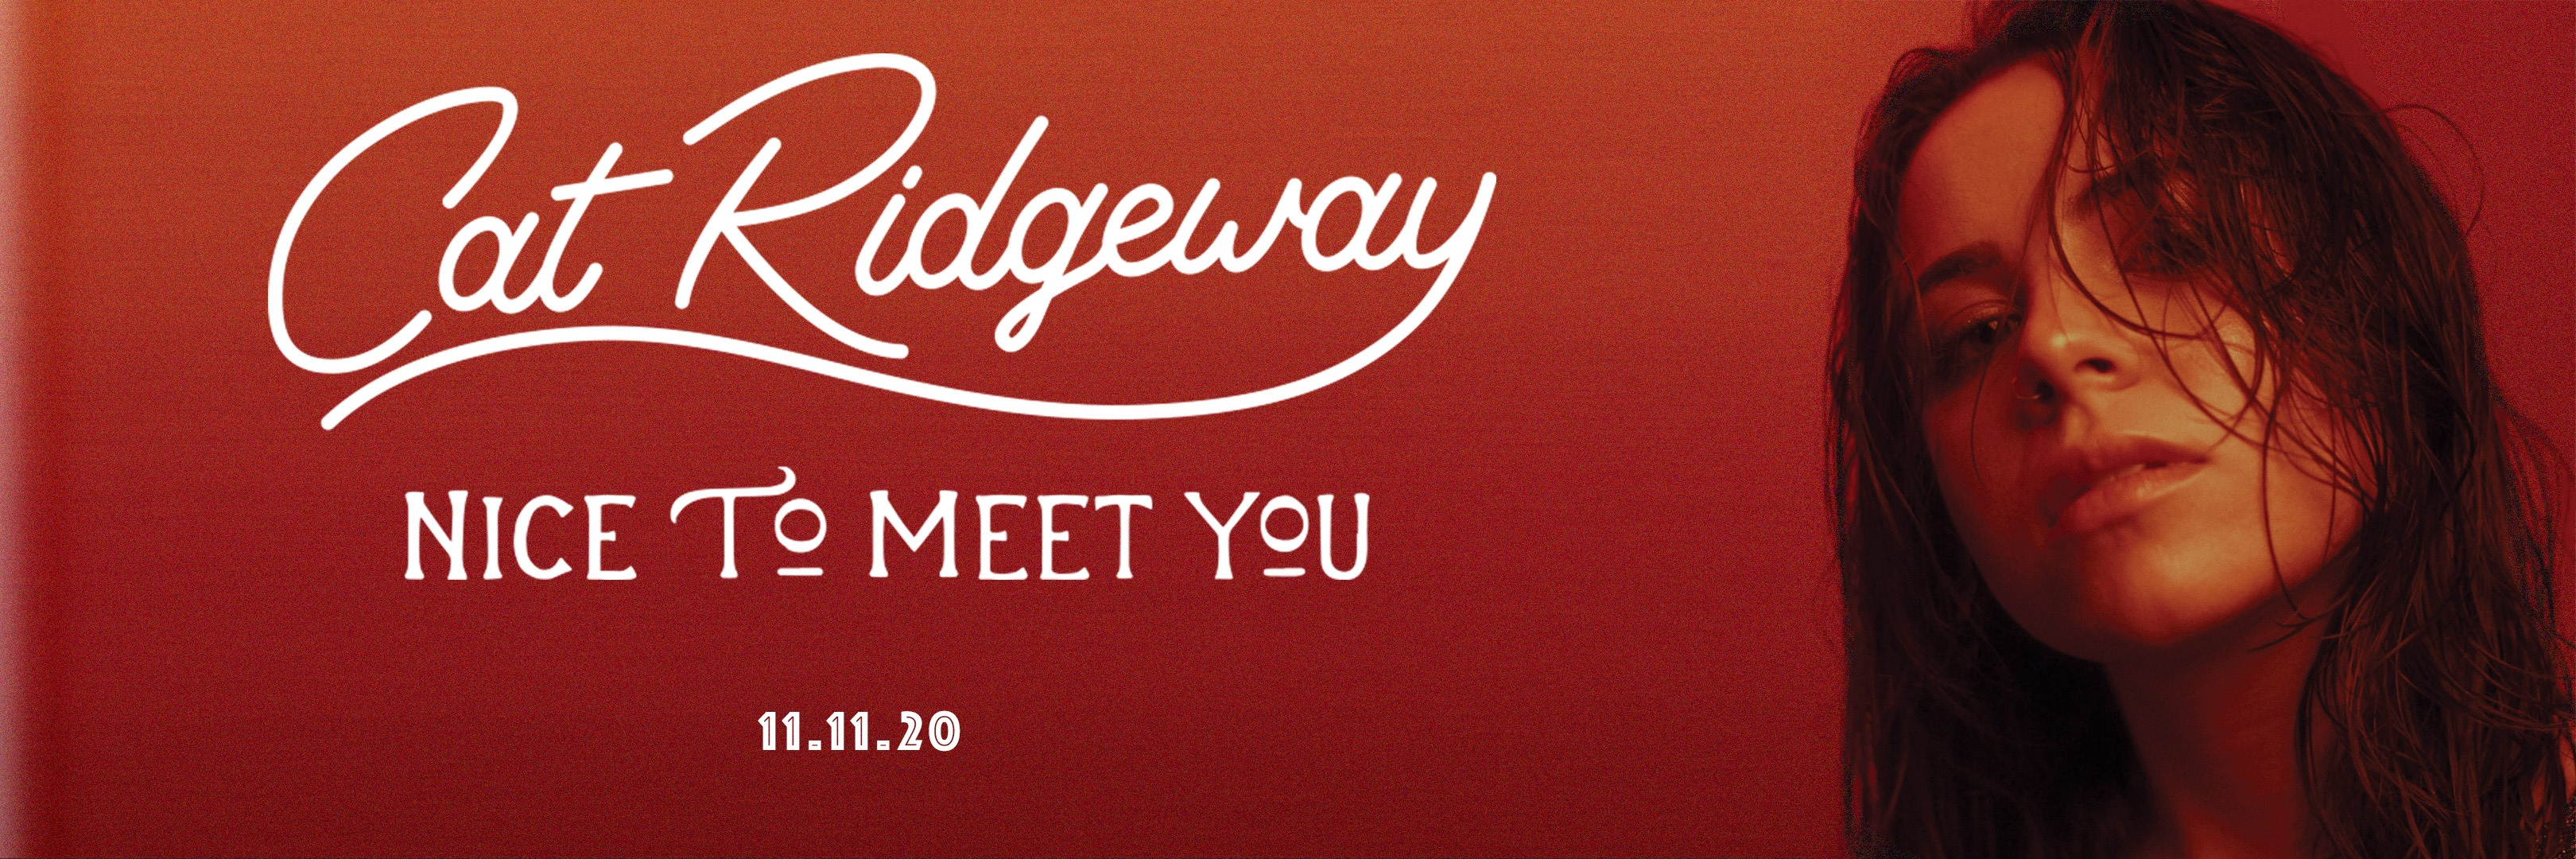 "Cat Ridgeway | ""Nice To Meet You"" 